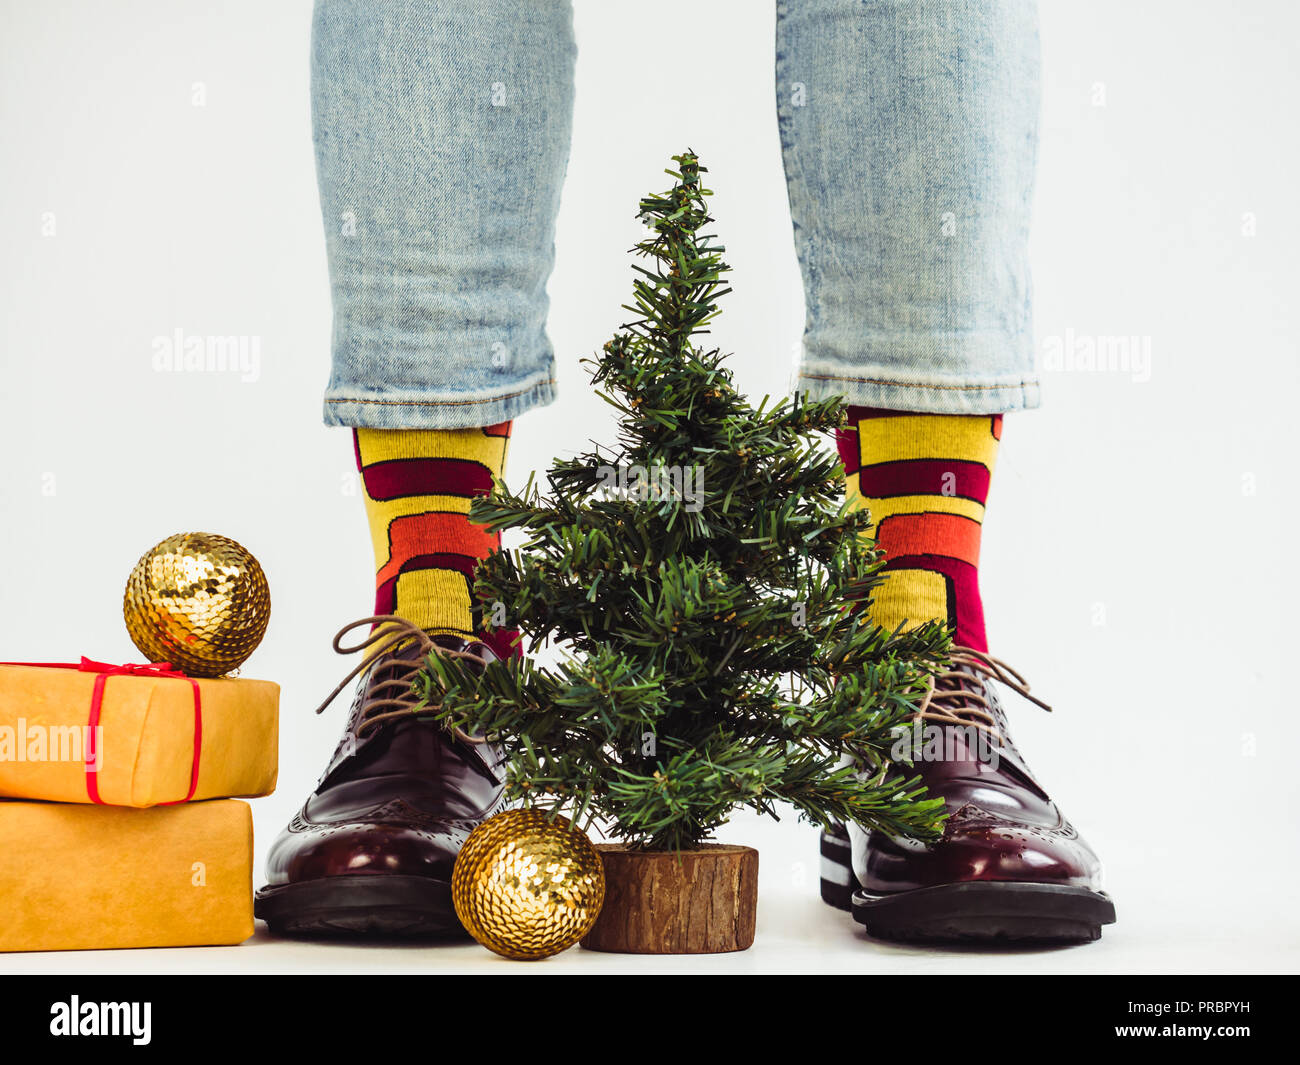 Weihnachtsbaum Fun.Men S Legs Funny Socks And A Christmas Tree Stock Photo 220920997